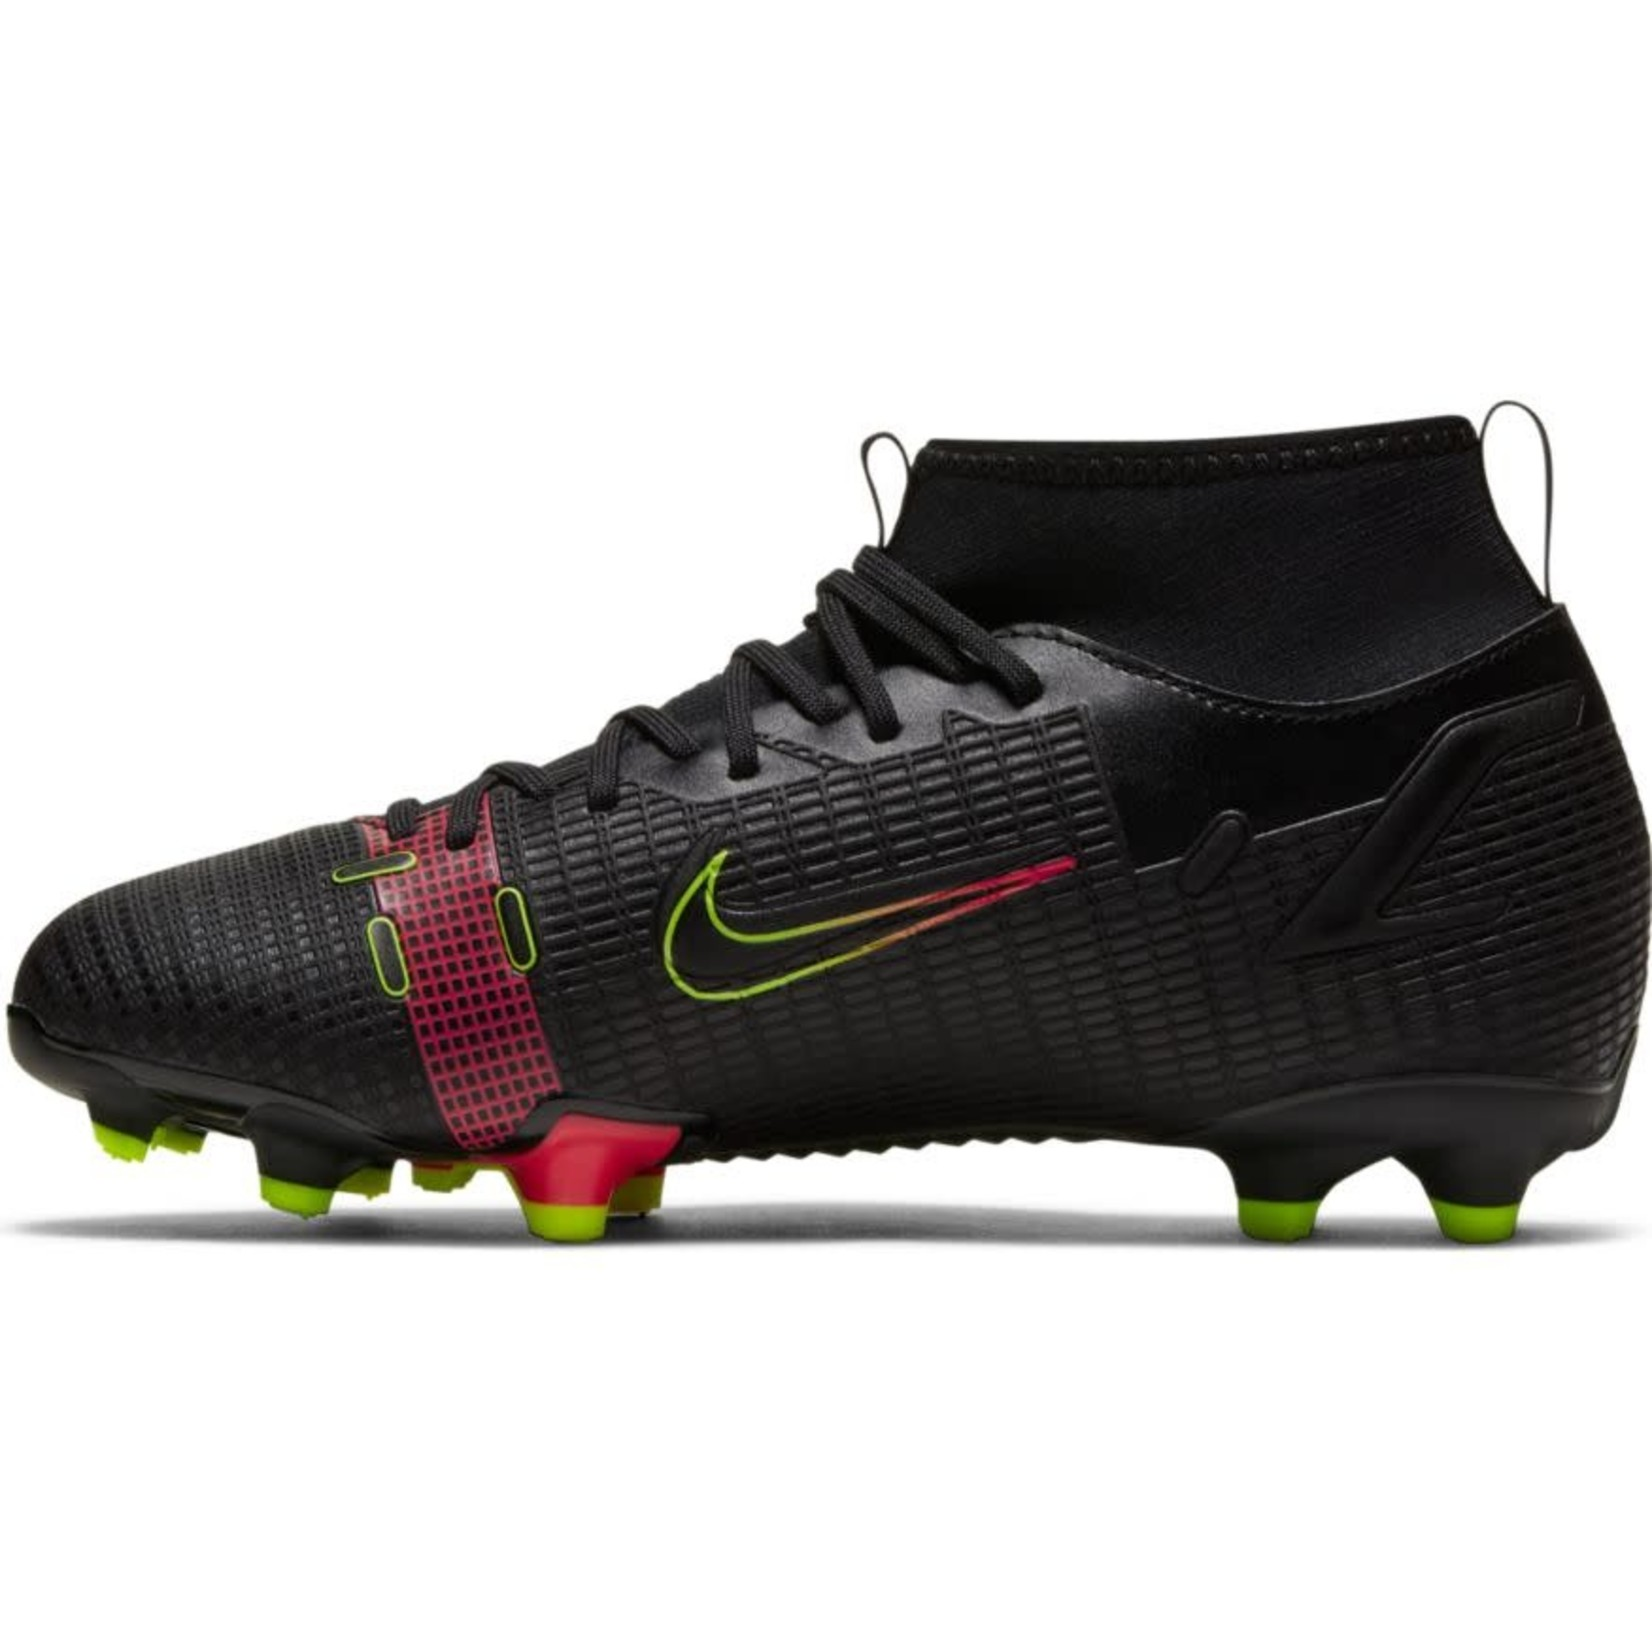 NIKE MERCURIAL SUPERFLY 8 ACADEMY MG JR (BLACK/VOLT)